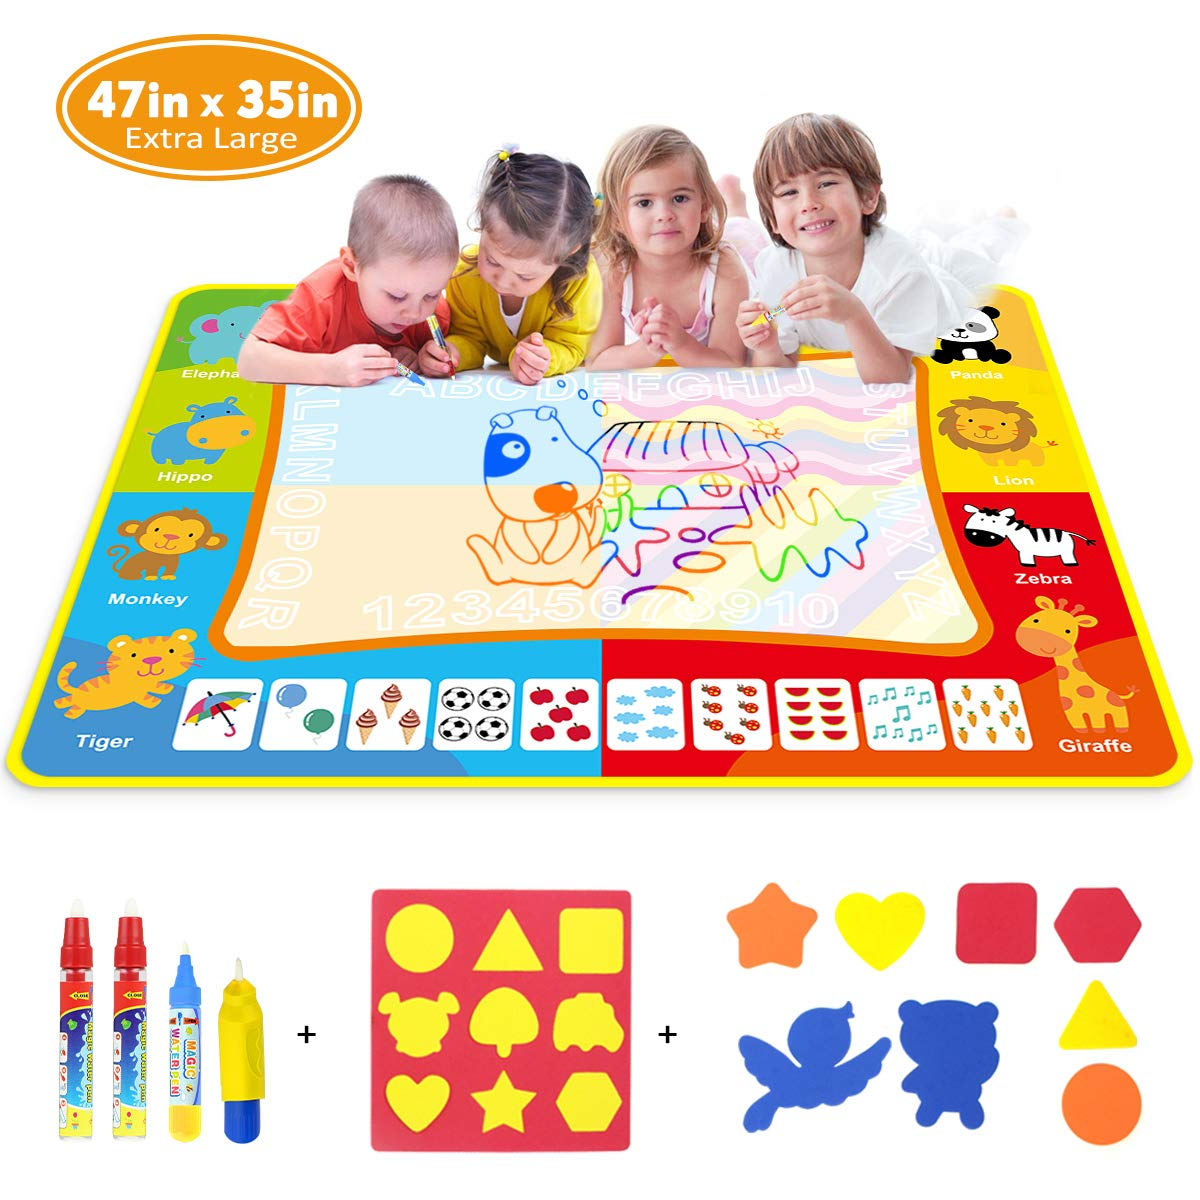 Doodle Mat - Funplus Large Size 47'' X 35'' of Water Drawing Mat for Kids with 4 Magic Water Pens and 17 Molds, No Mess Kids Educational Toy Gift Magic Painting Doodle Mat with Neon Colors for Toddler